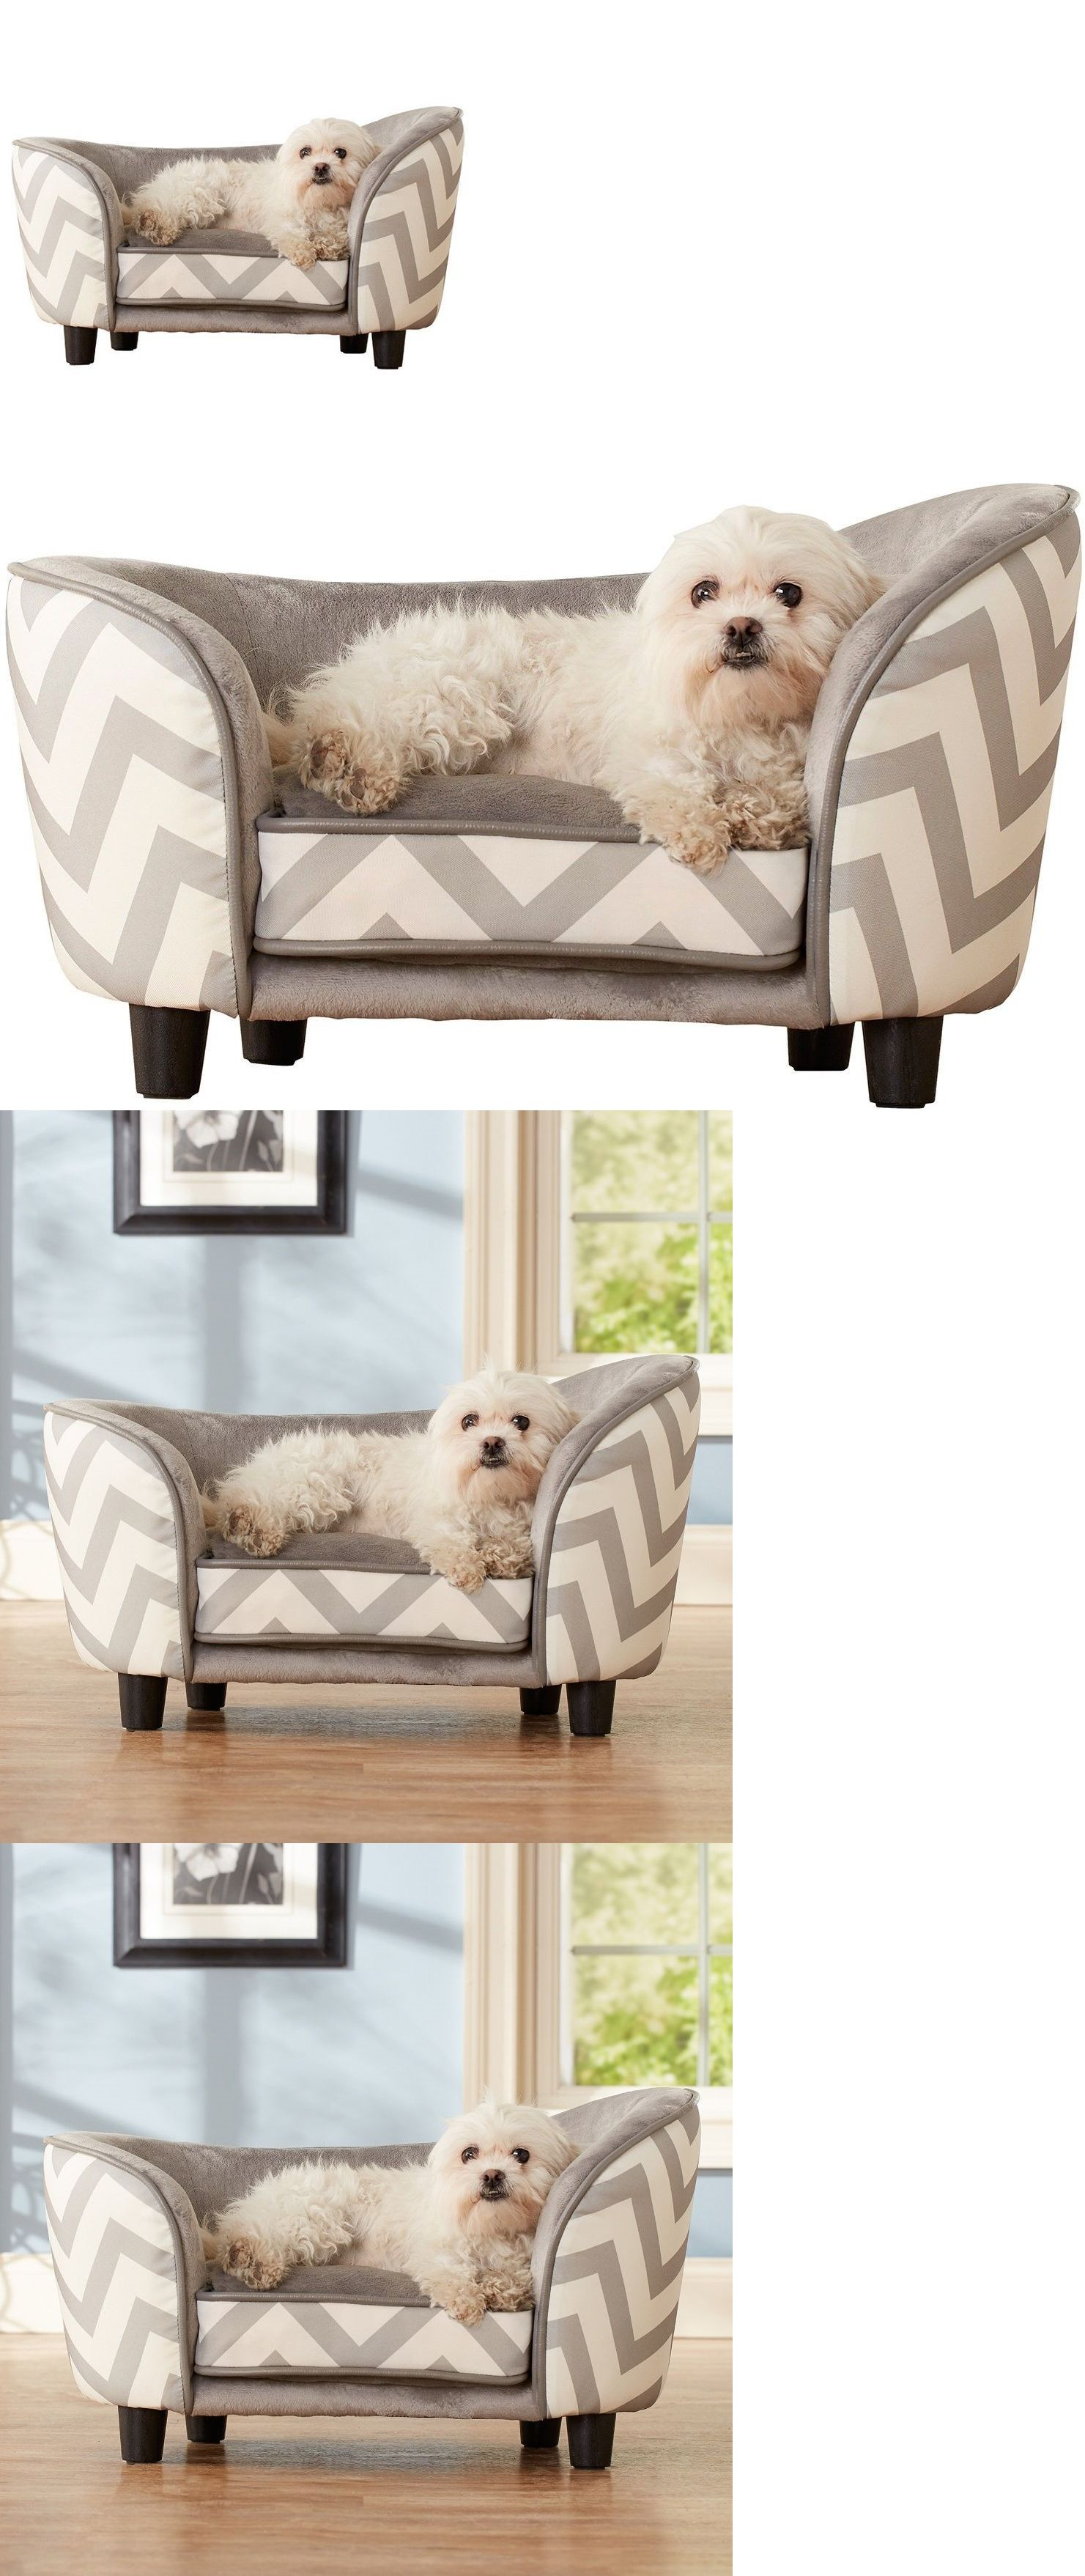 Beds 20744: Pet Sofa Small Dog Cat Bed Couch Furniture Raised Sleeper Foam  Cushion Chair